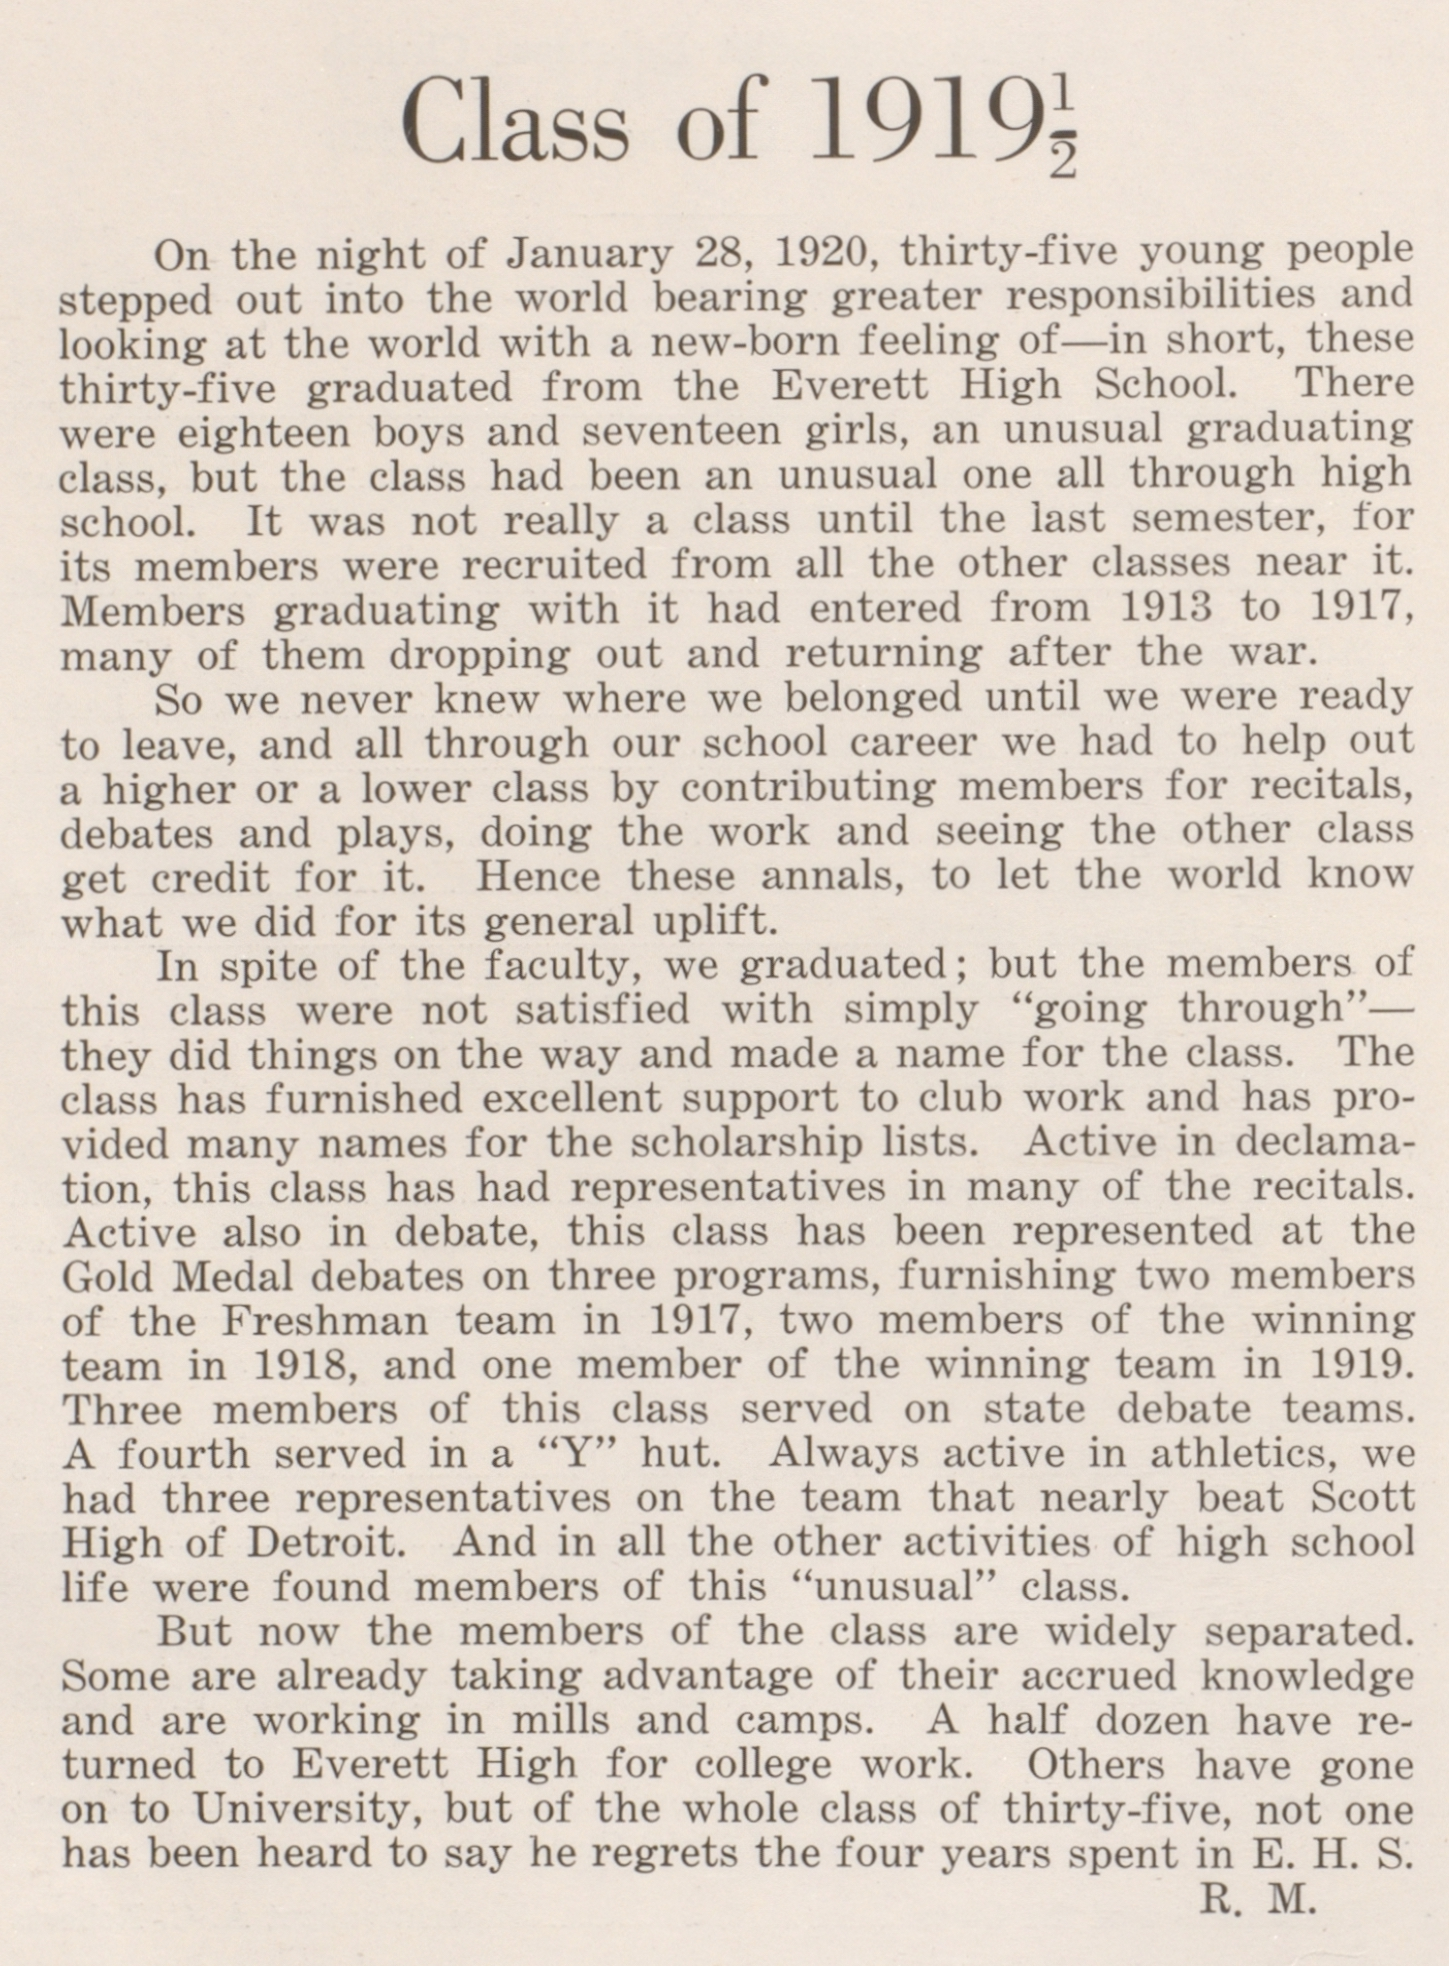 Class of 1919 1/2 statement